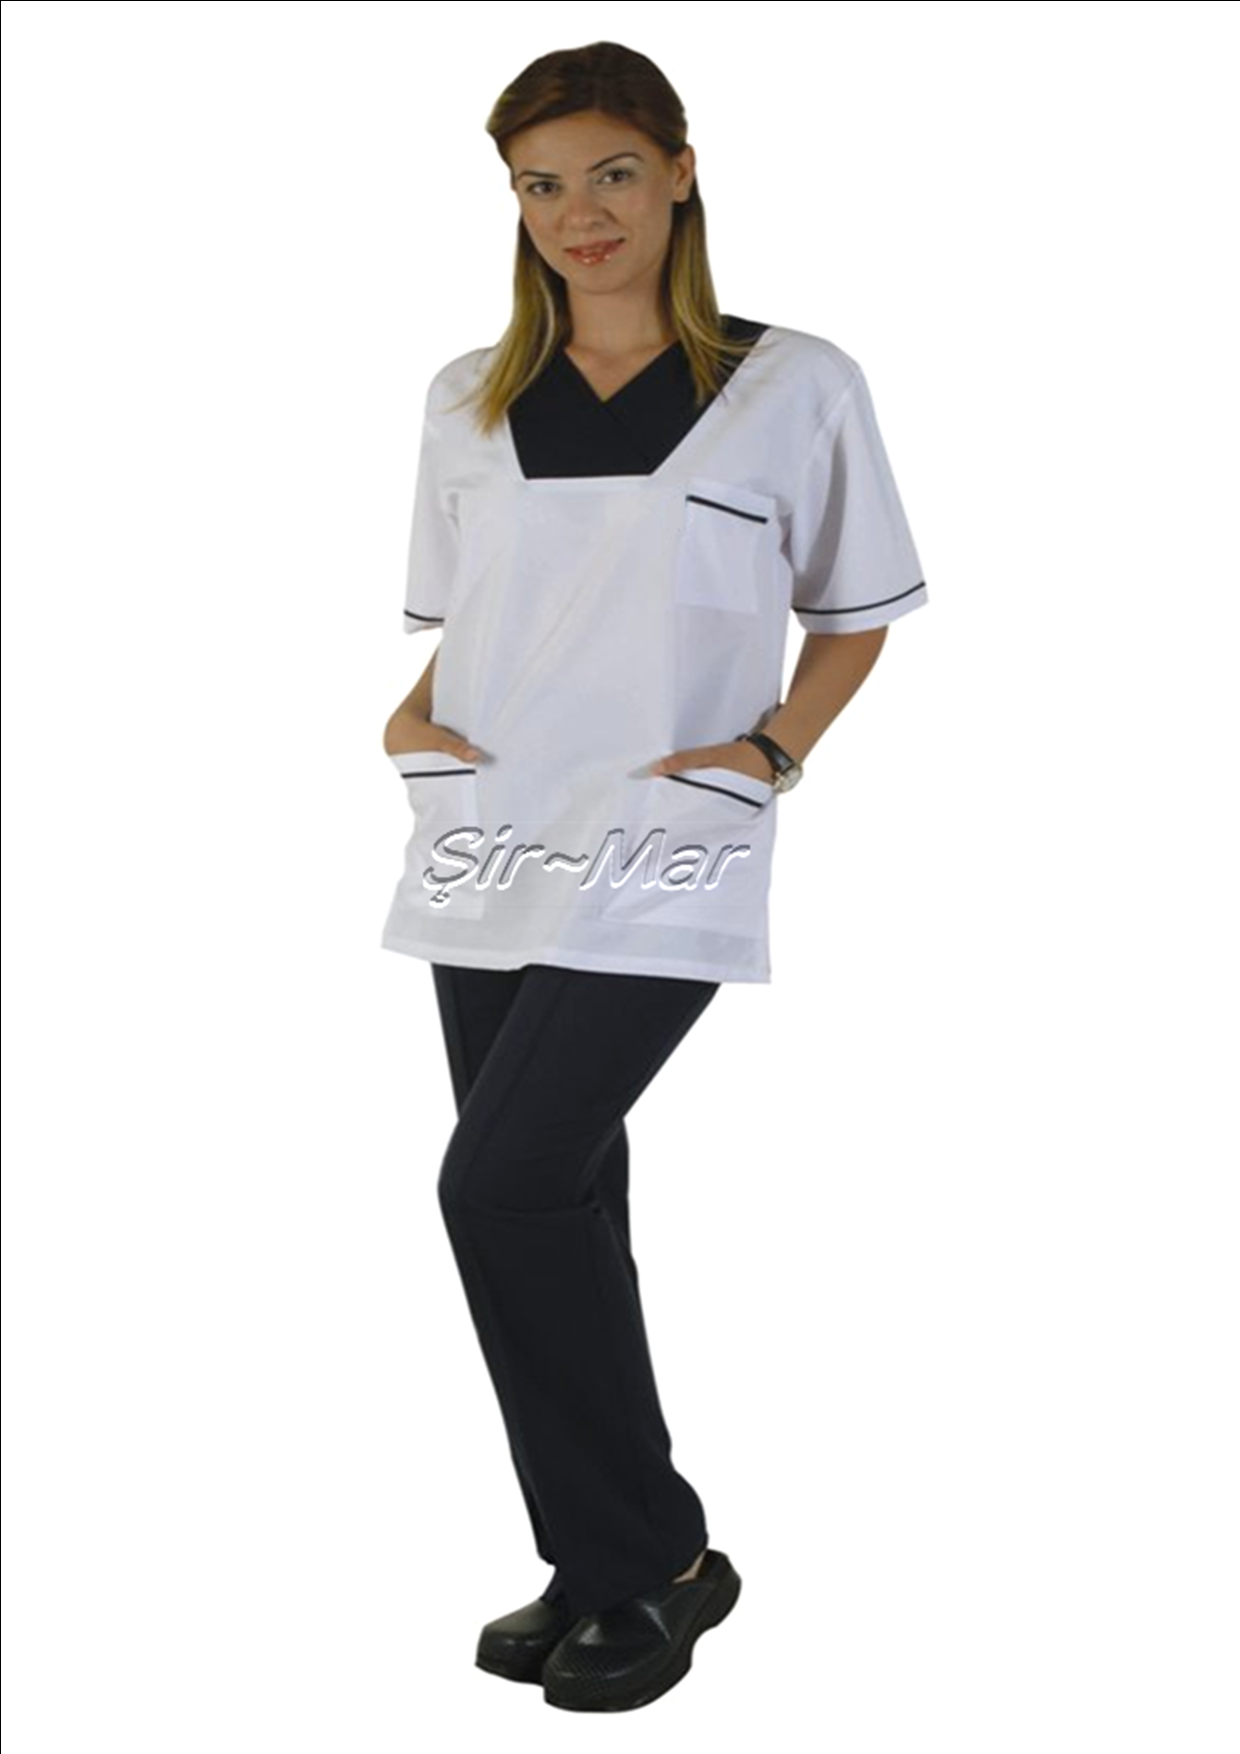 HNU-12 HEAD NURSE UNIFORM • Top & Pant • Alpaca fabric, %65/35 poly/viscose • Fashioned collar • One chest and two patch pockets • Short or long sleeve options • Closed front • Wrinkle resistant • No yellowing • Color: White on Dark blue • Optional pastel colors • Sizes(US): XS – S -M - L - XL -2XL -3XL • Sizes(EU): 36 -38 -40 -42 -44 -46 -48